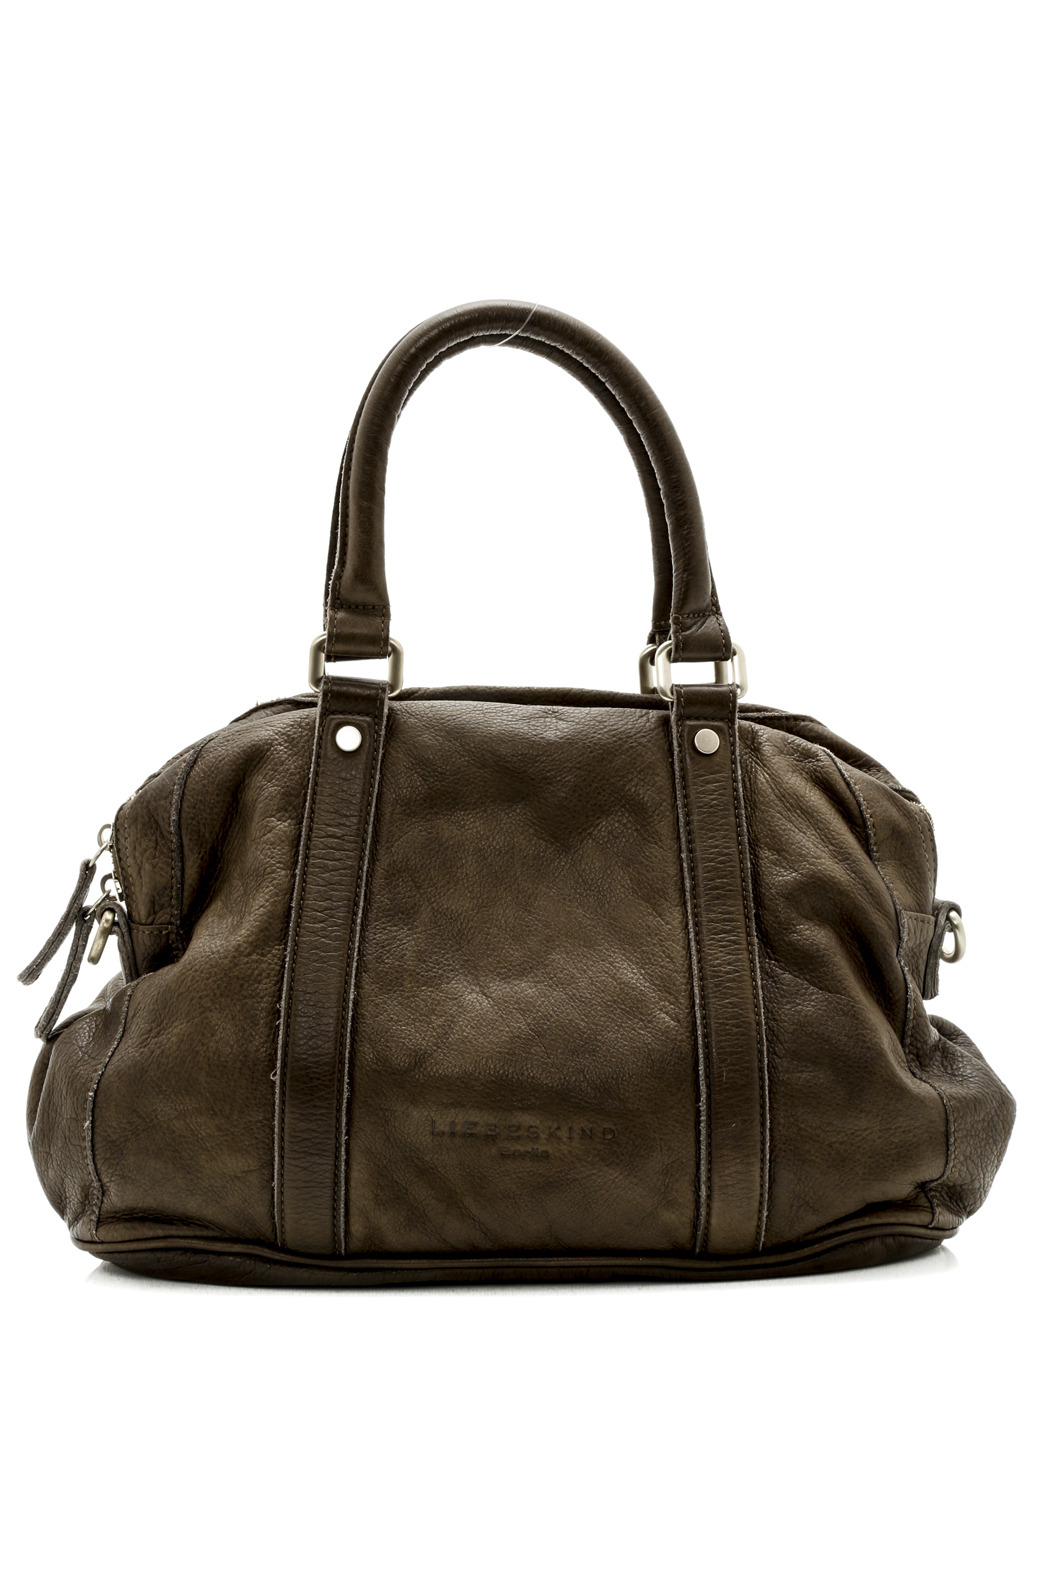 Liebeskind Berlin Vroni Dd Leather Handbag Front Cropped Image